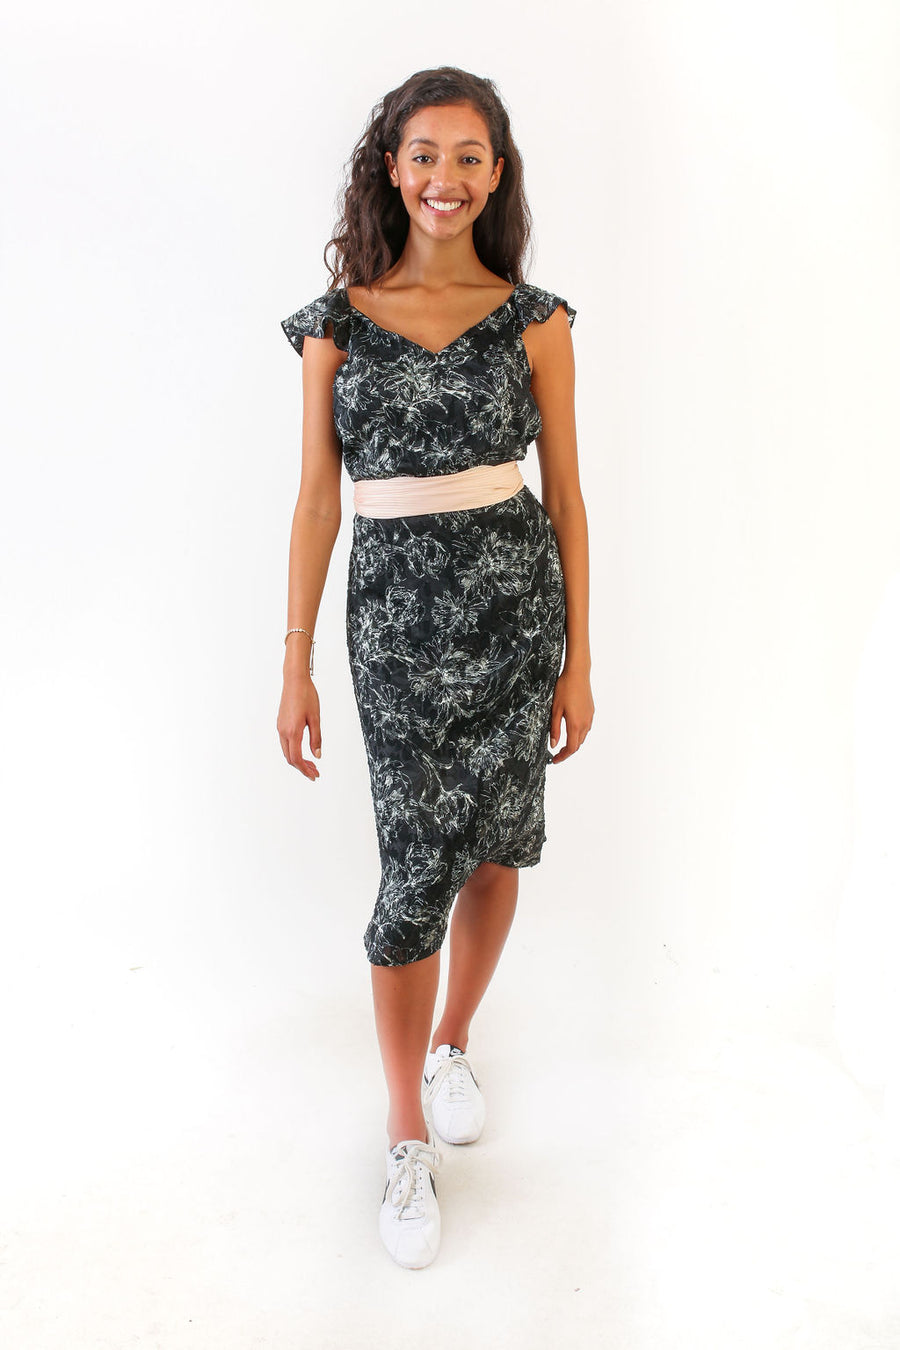 BELLA SKIRT BLACK CHIFFON WITH WHITE FLOWERS *LIMITED*EDITION*